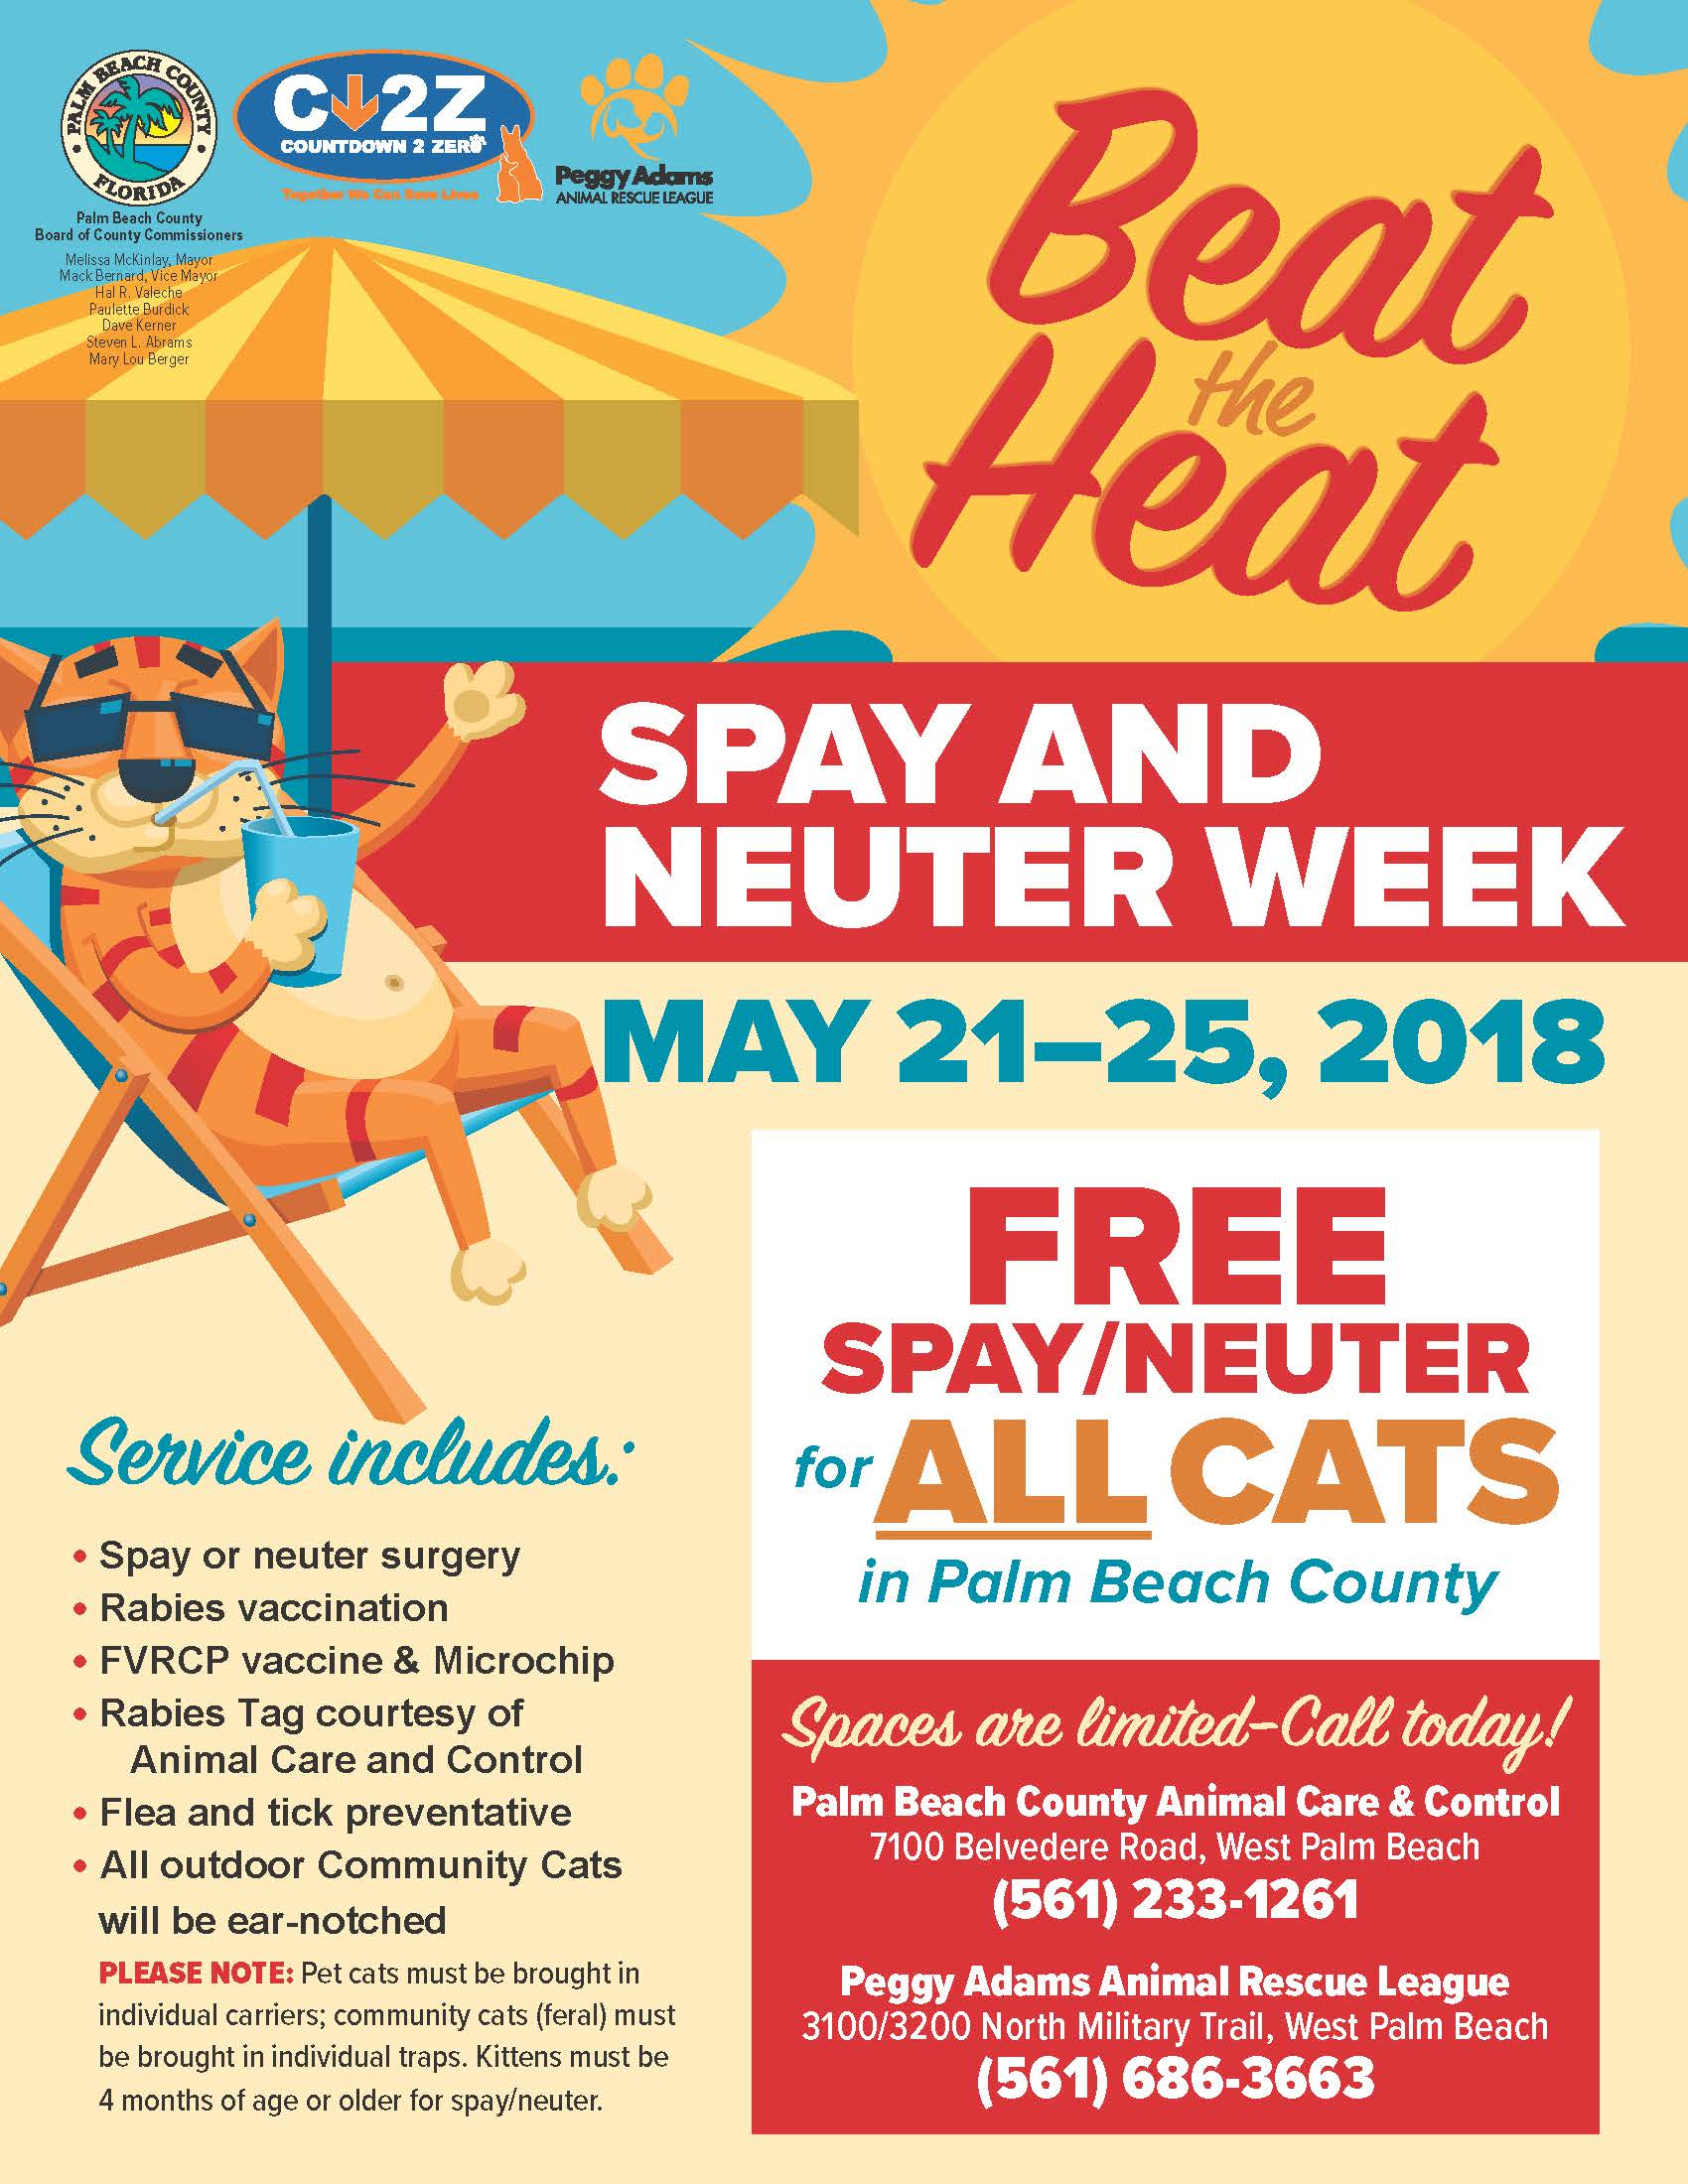 Beat%20the%20Heat%20Spay%20Neuter%20Flyer%20(2).jpg